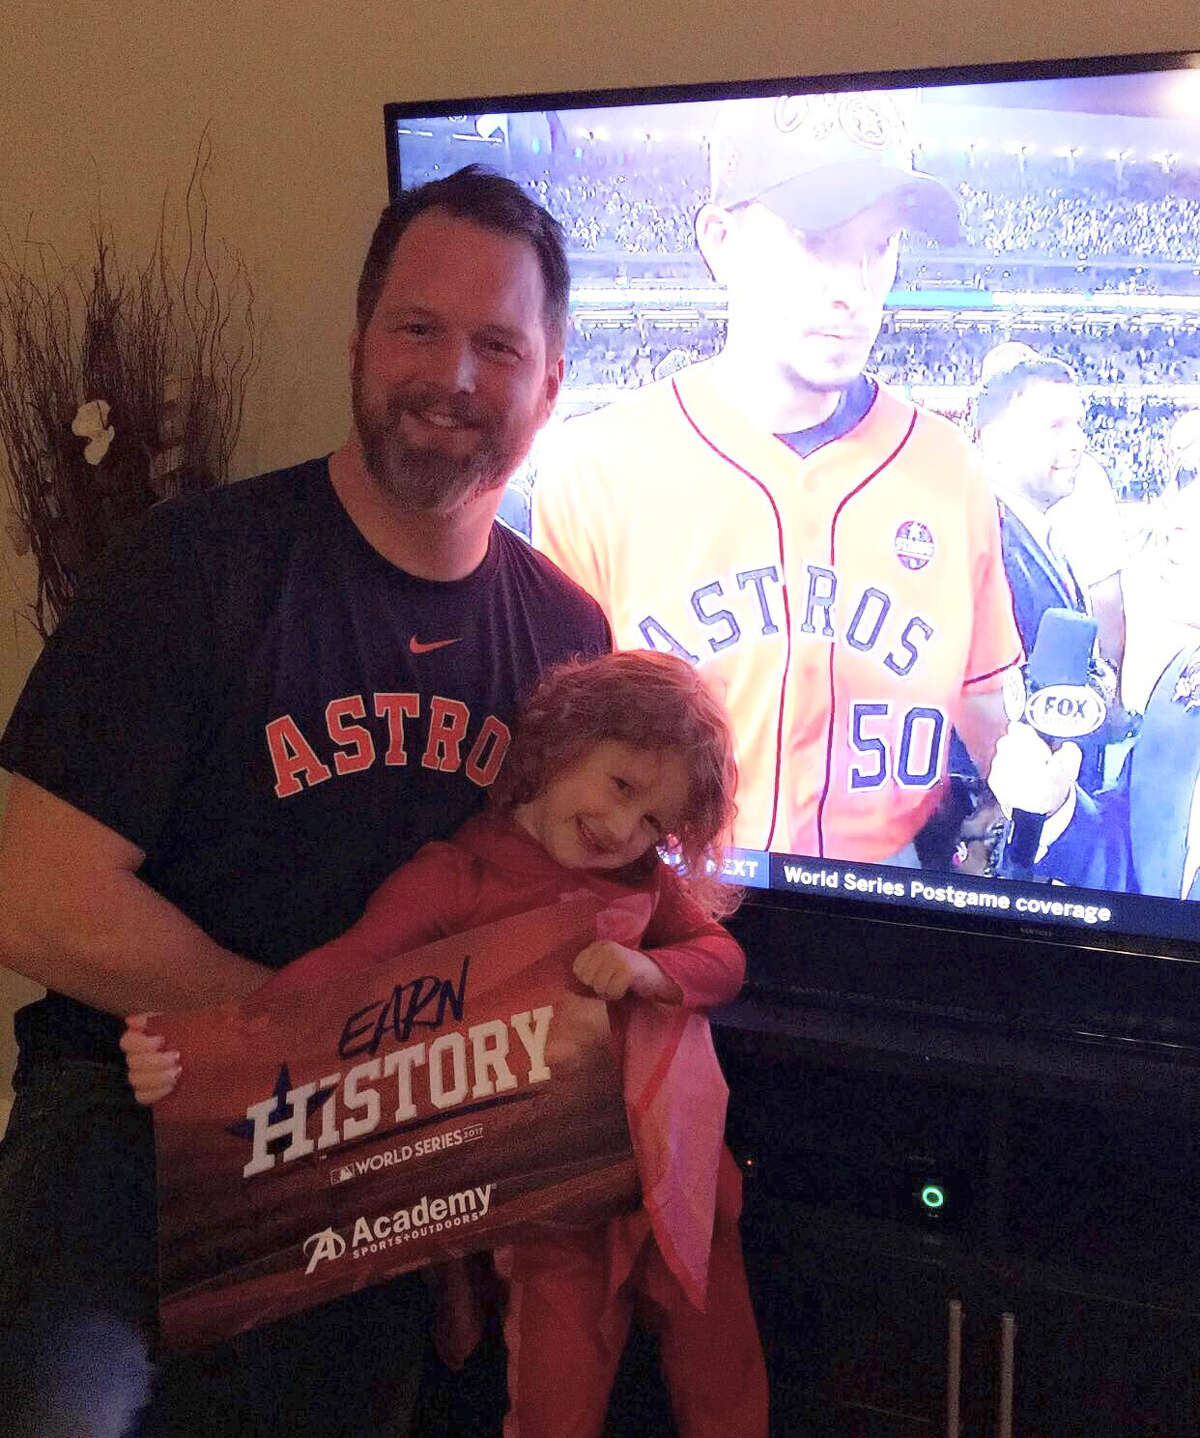 PHOTOS: More shots of Penny and other Astros fans celebrating the Astros' championship Four-year-old Penny Boyle celebrates the Astros' World Series championship with her dad Justin Boyle. Browse through the photos above for a look at fans representing the Astros after winning the World Series.